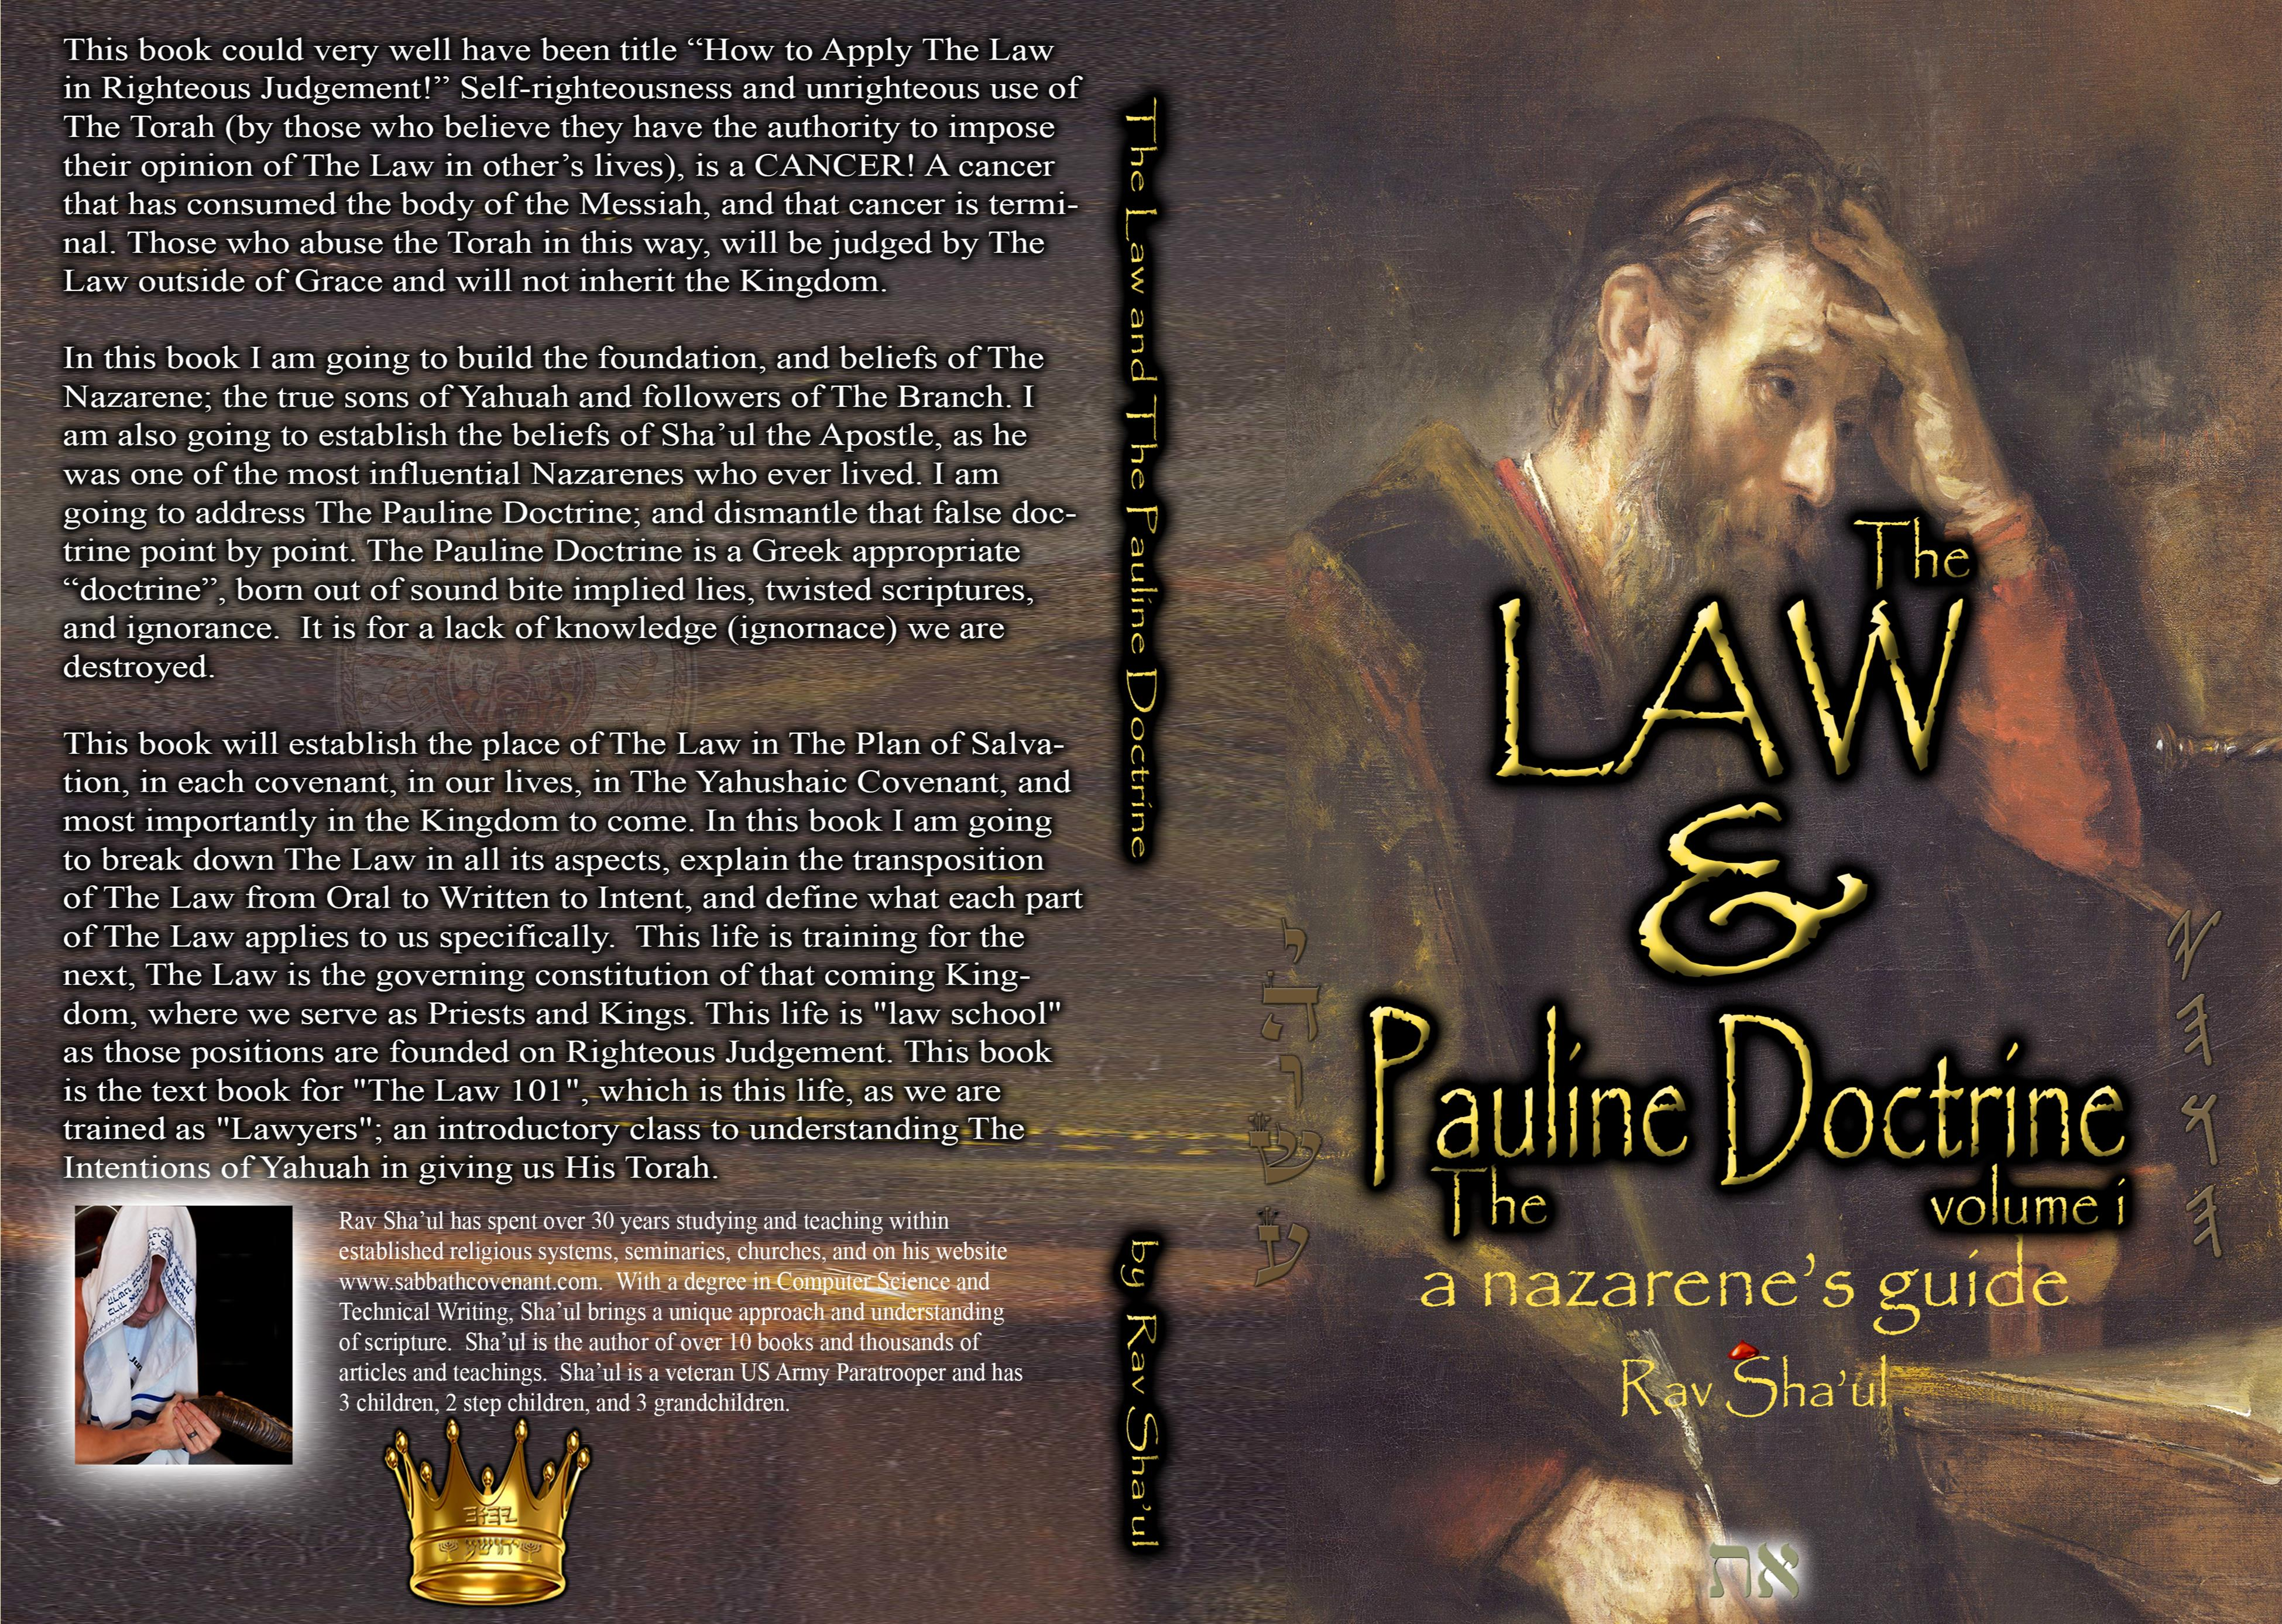 The Law and The Pauline Doctrine cover image